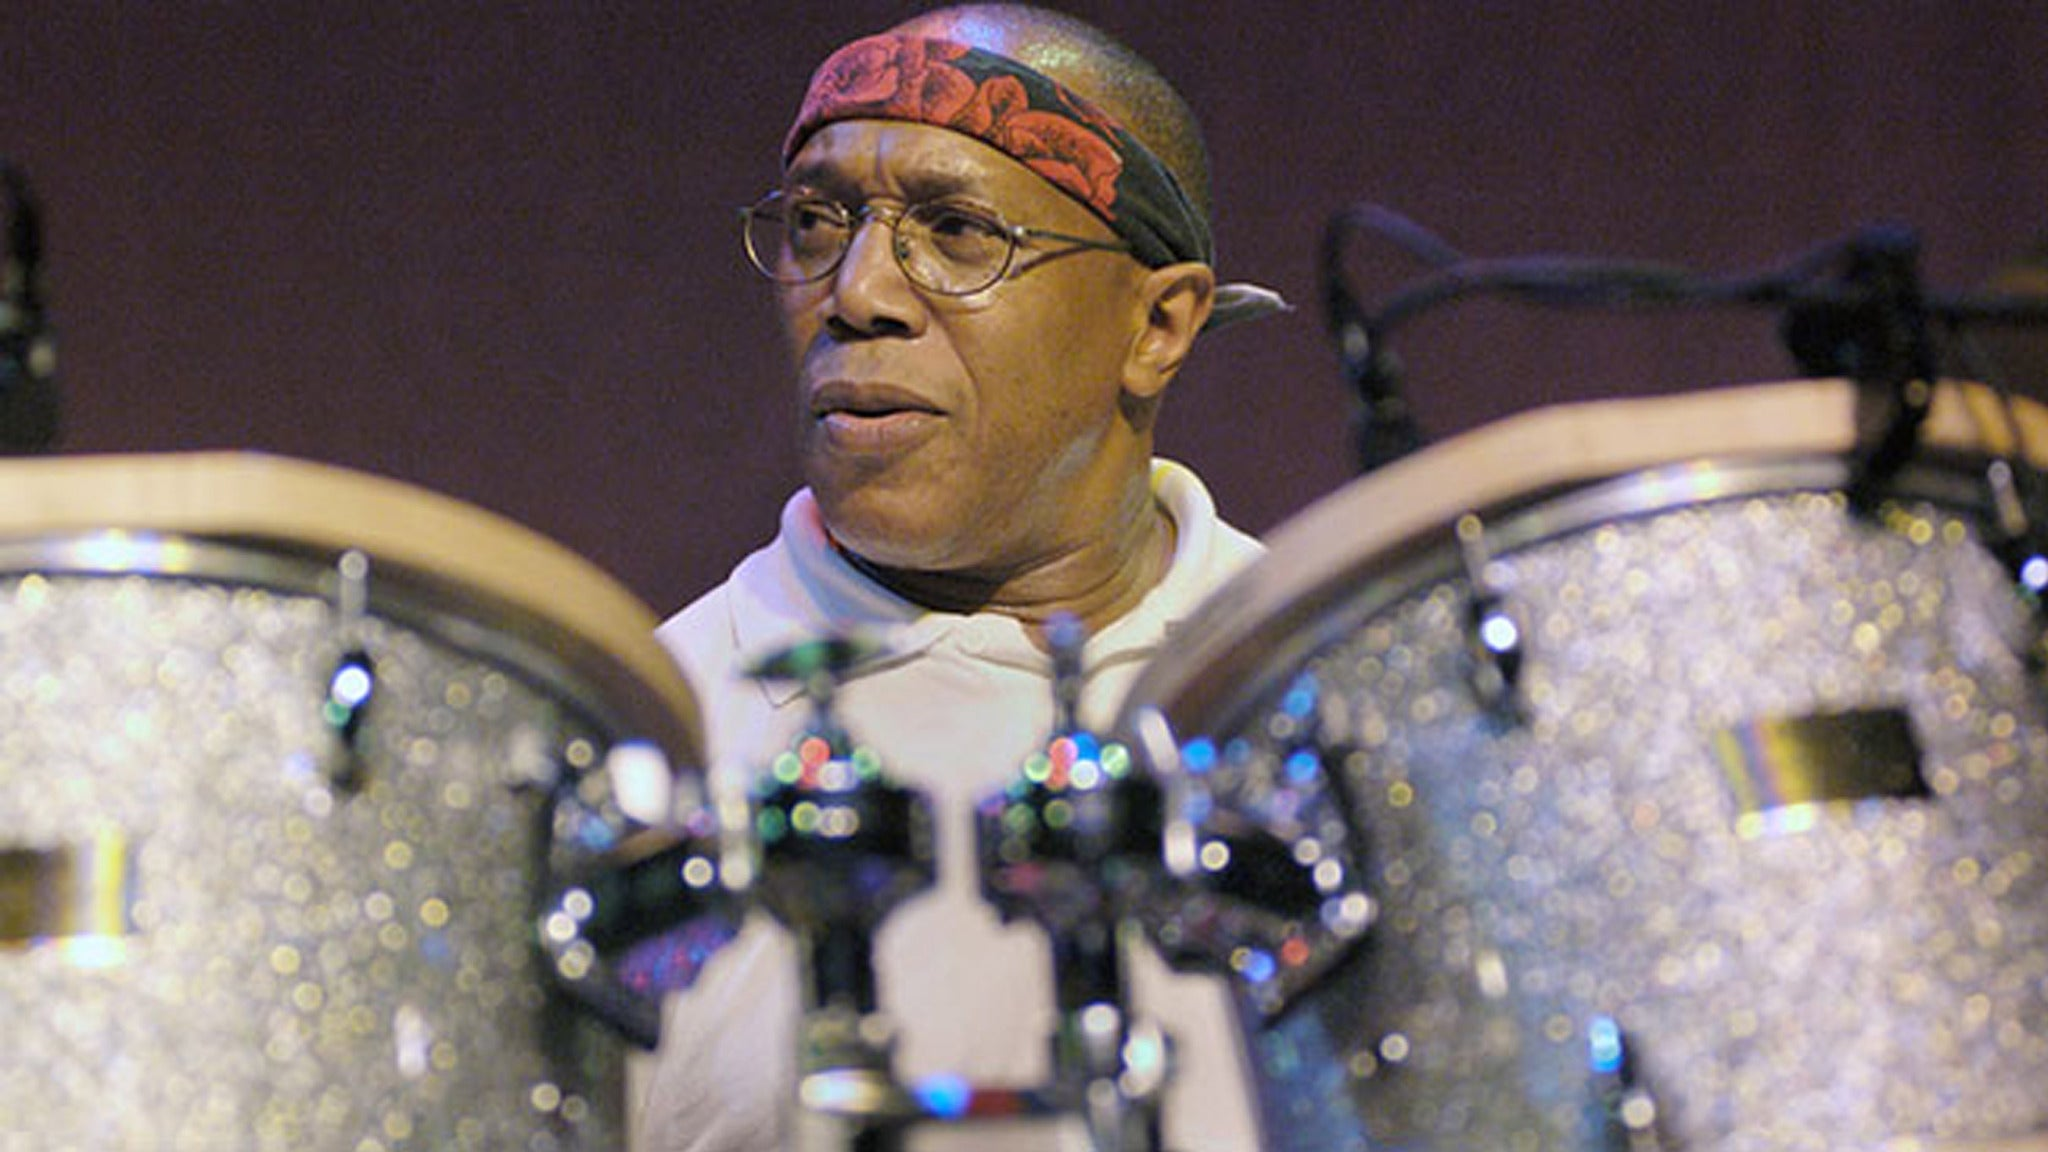 Billy Cobham w/ Randy Brecker at Ardmore Music Hall